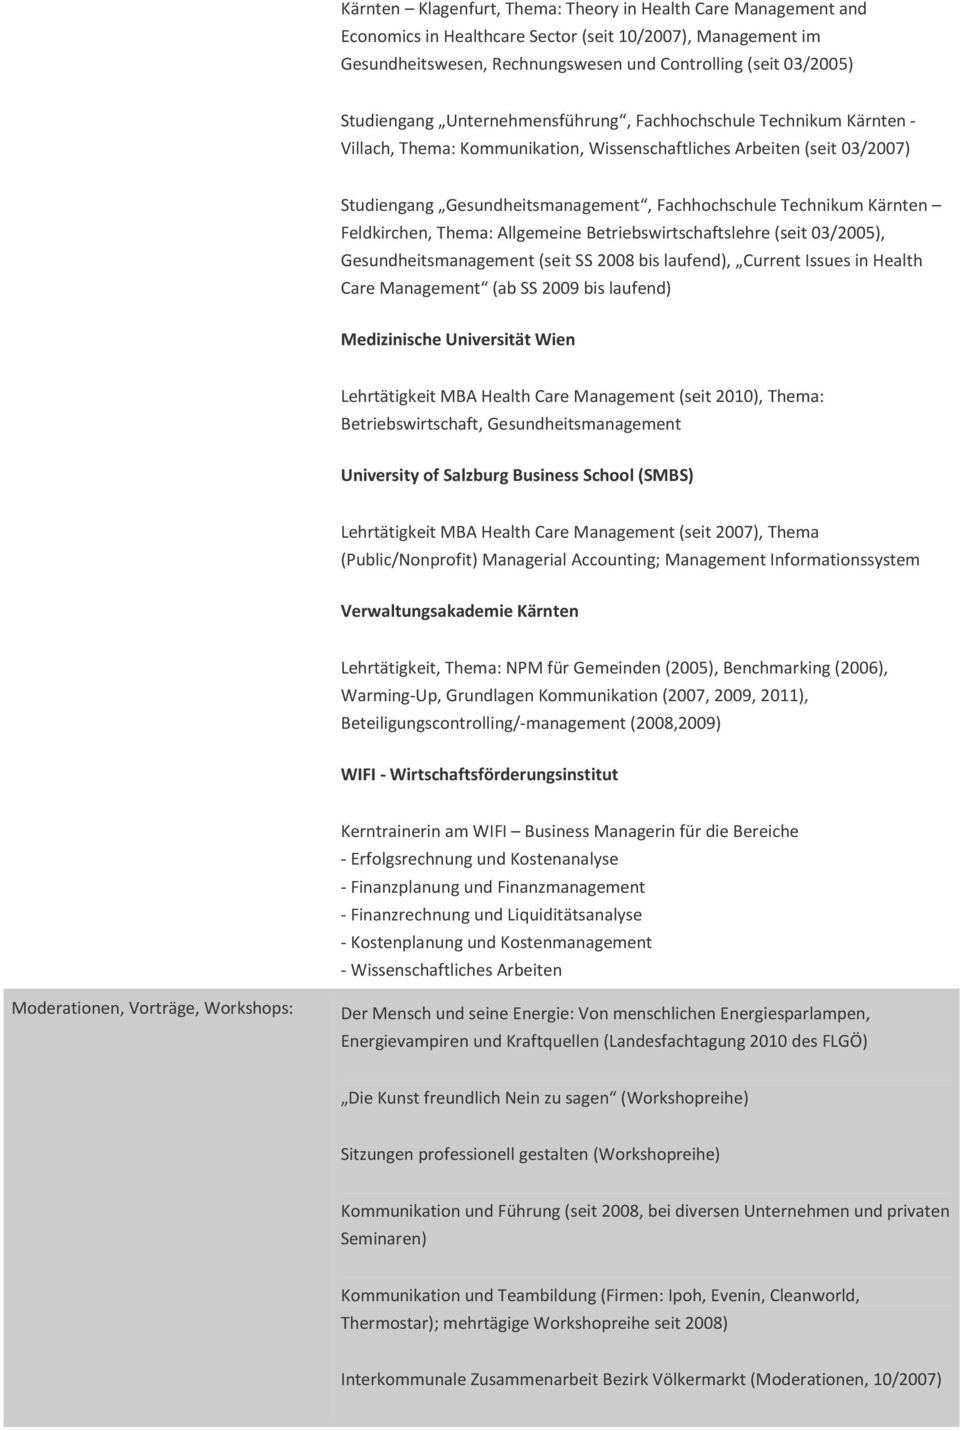 Technikum Kärnten Feldkirchen, Thema: Allgemeine Betriebswirtschaftslehre (seit 03/2005), Gesundheitsmanagement (seit SS 2008 bis laufend), Current Issues in Health Care Management (ab SS 2009 bis